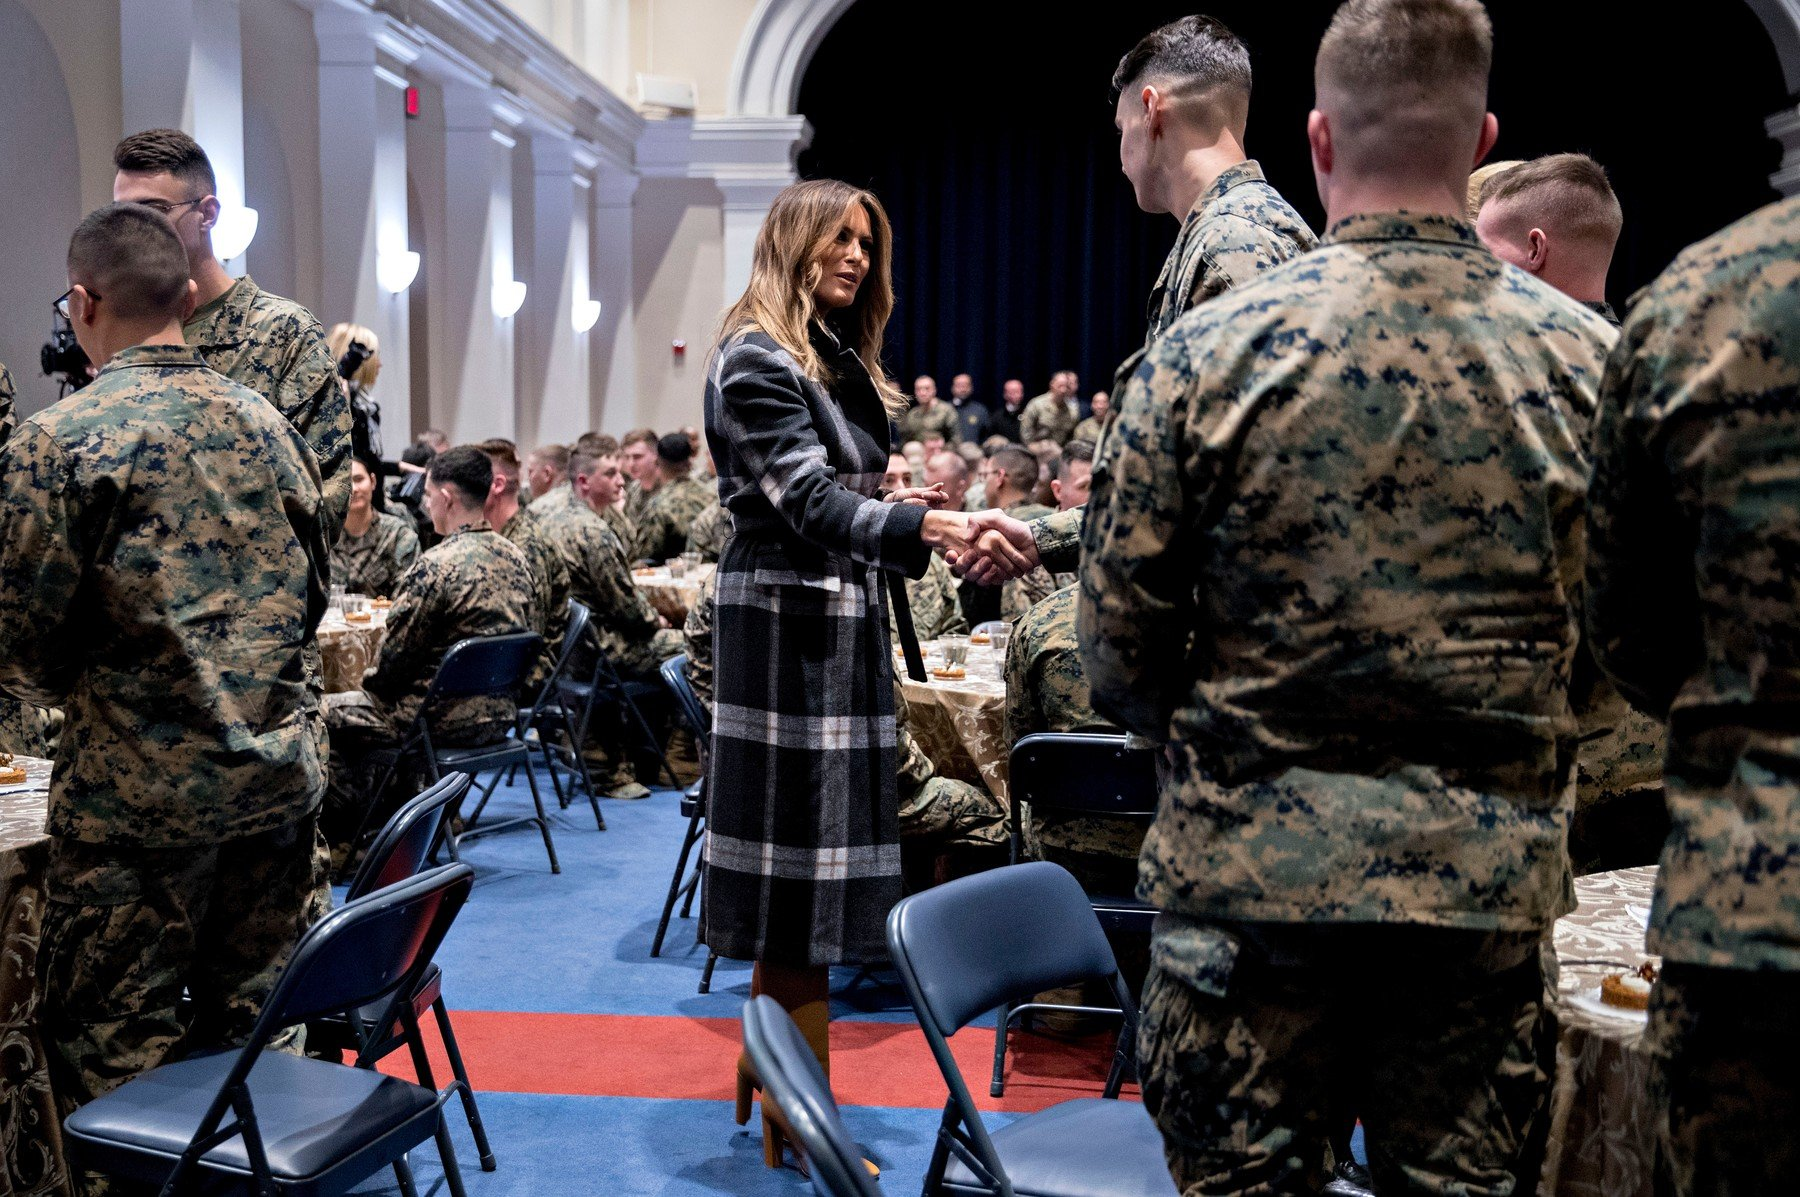 First Lady Melania Trump, center, greets Marines with United States President Donald J. Trump, not pictured, at Marine Barracks in Washington, D.C., U.S,. President Trump and the First Lady are meeting with Marines who responded to a building fire at the Arthur Capper Public Housing complex. Donald Trump Visit to Marine Barracks, Washington DC, USA - 15 Nov 2018, Image: 396365606, License: Rights-managed, Restrictions: , Model Release: no, Credit line: Profimedia, TEMP Rex Features